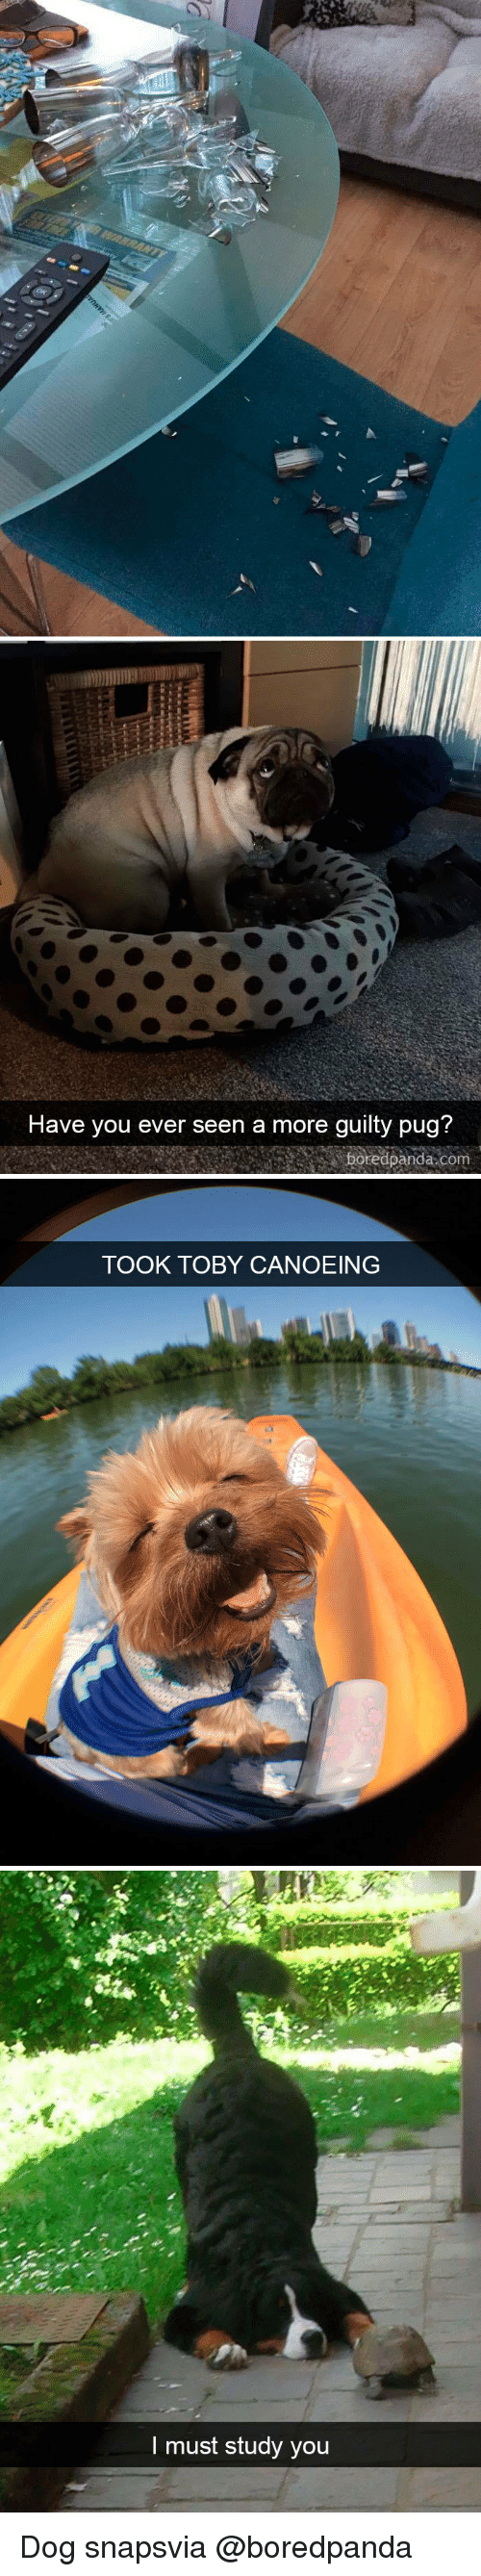 Dog, Com, and Via: Have vou ever seen a more quilty pua?  boredpanda com   TOOK TOBY CANOEING   I must study you Dog snapsvia @boredpanda